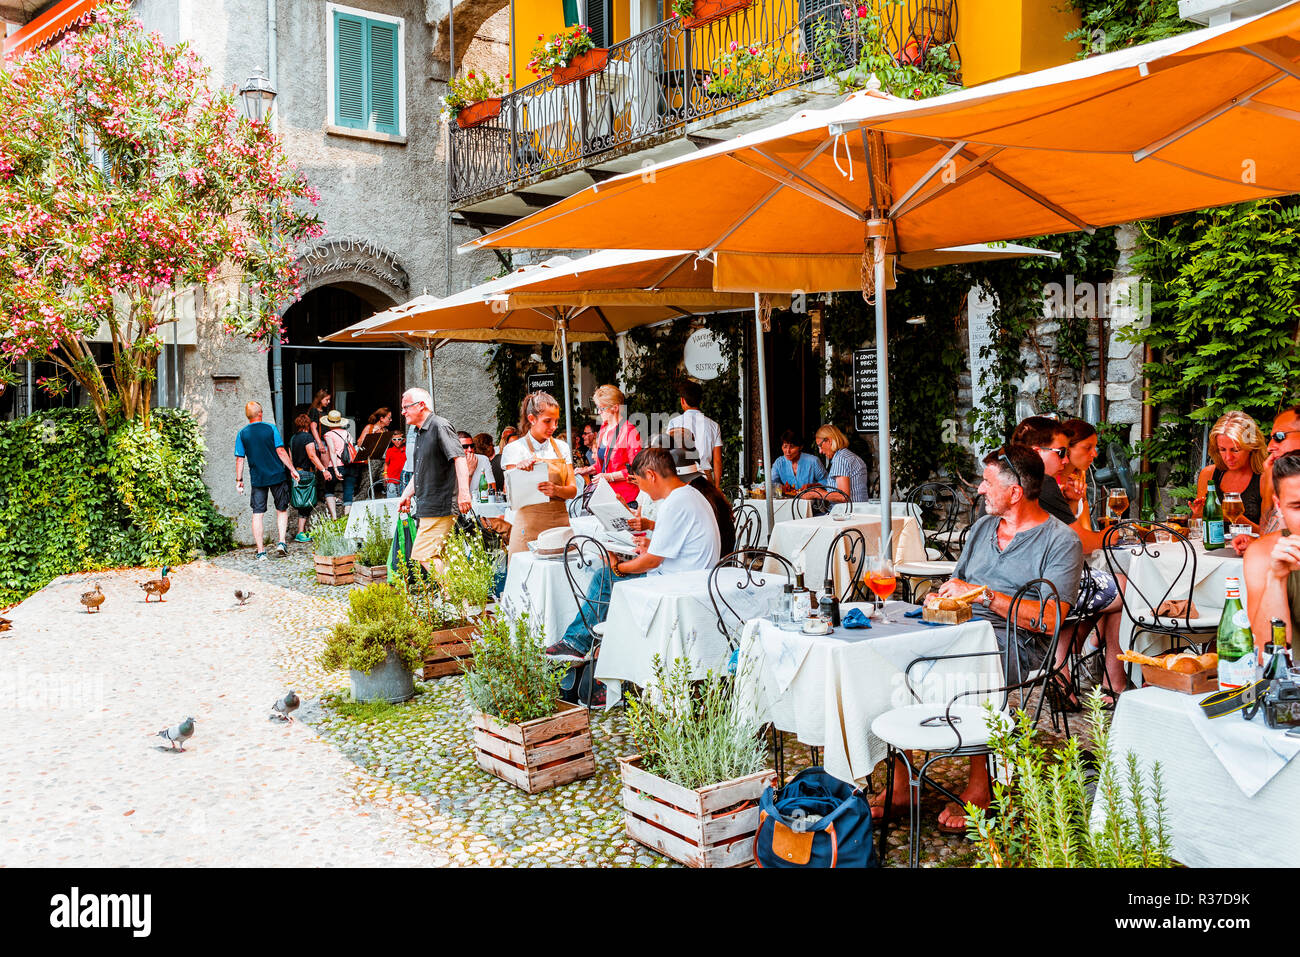 Varenna Caffe Bistrot Outdoor Restaurant Terrace Varenna Province Of Lecco Lombardy Italy Europe Stock Photo Alamy